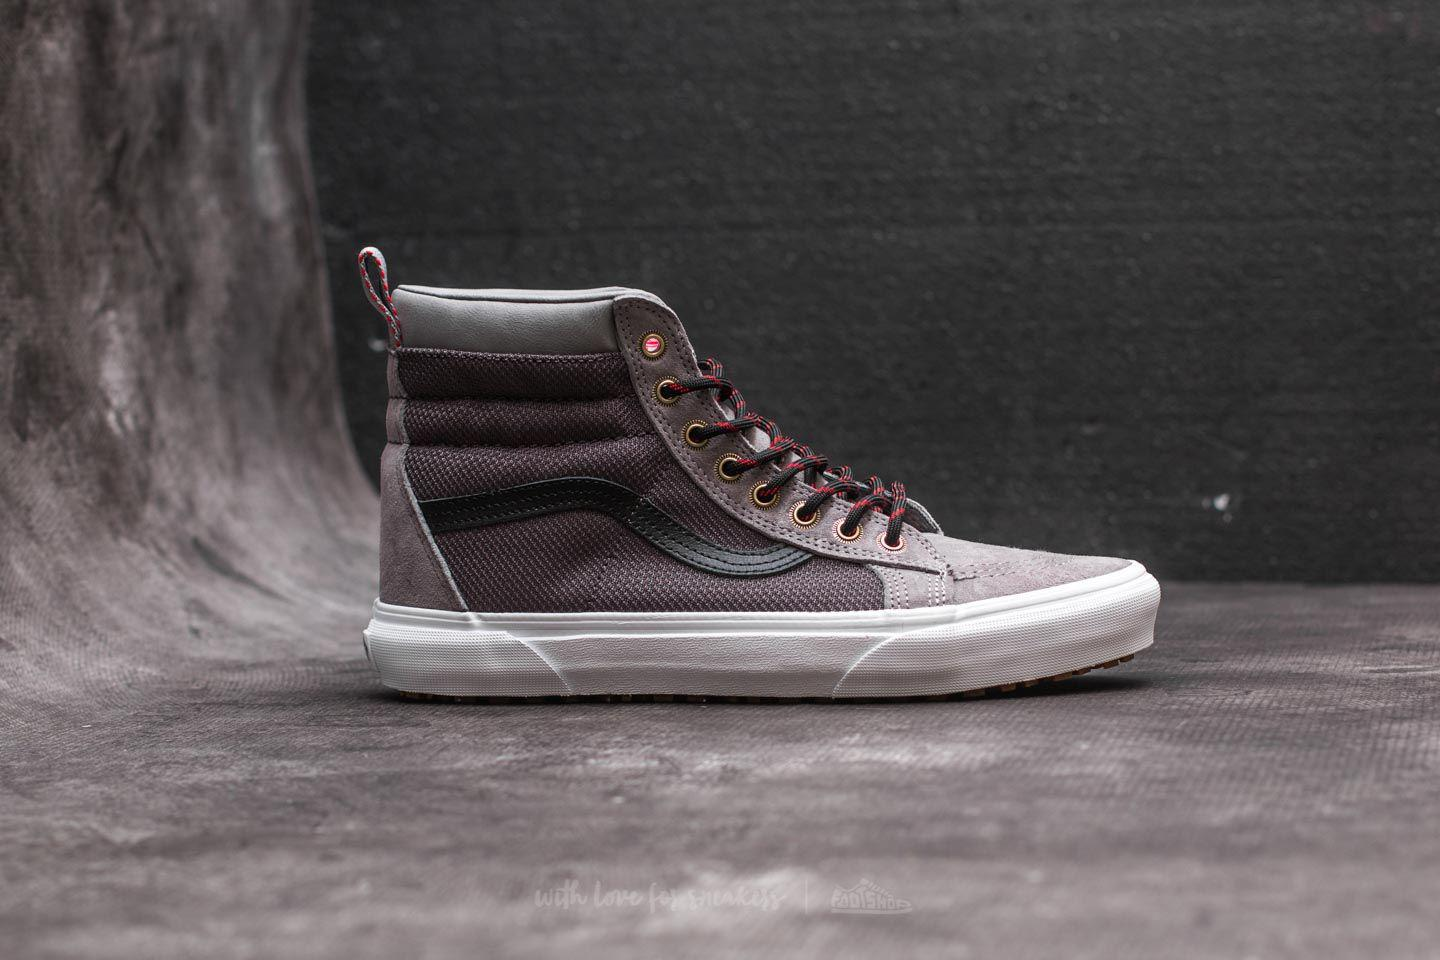 78aa66597e Lyst - Vans Sk8-hi Mte Frost Gray  Ballistic in Gray for Men